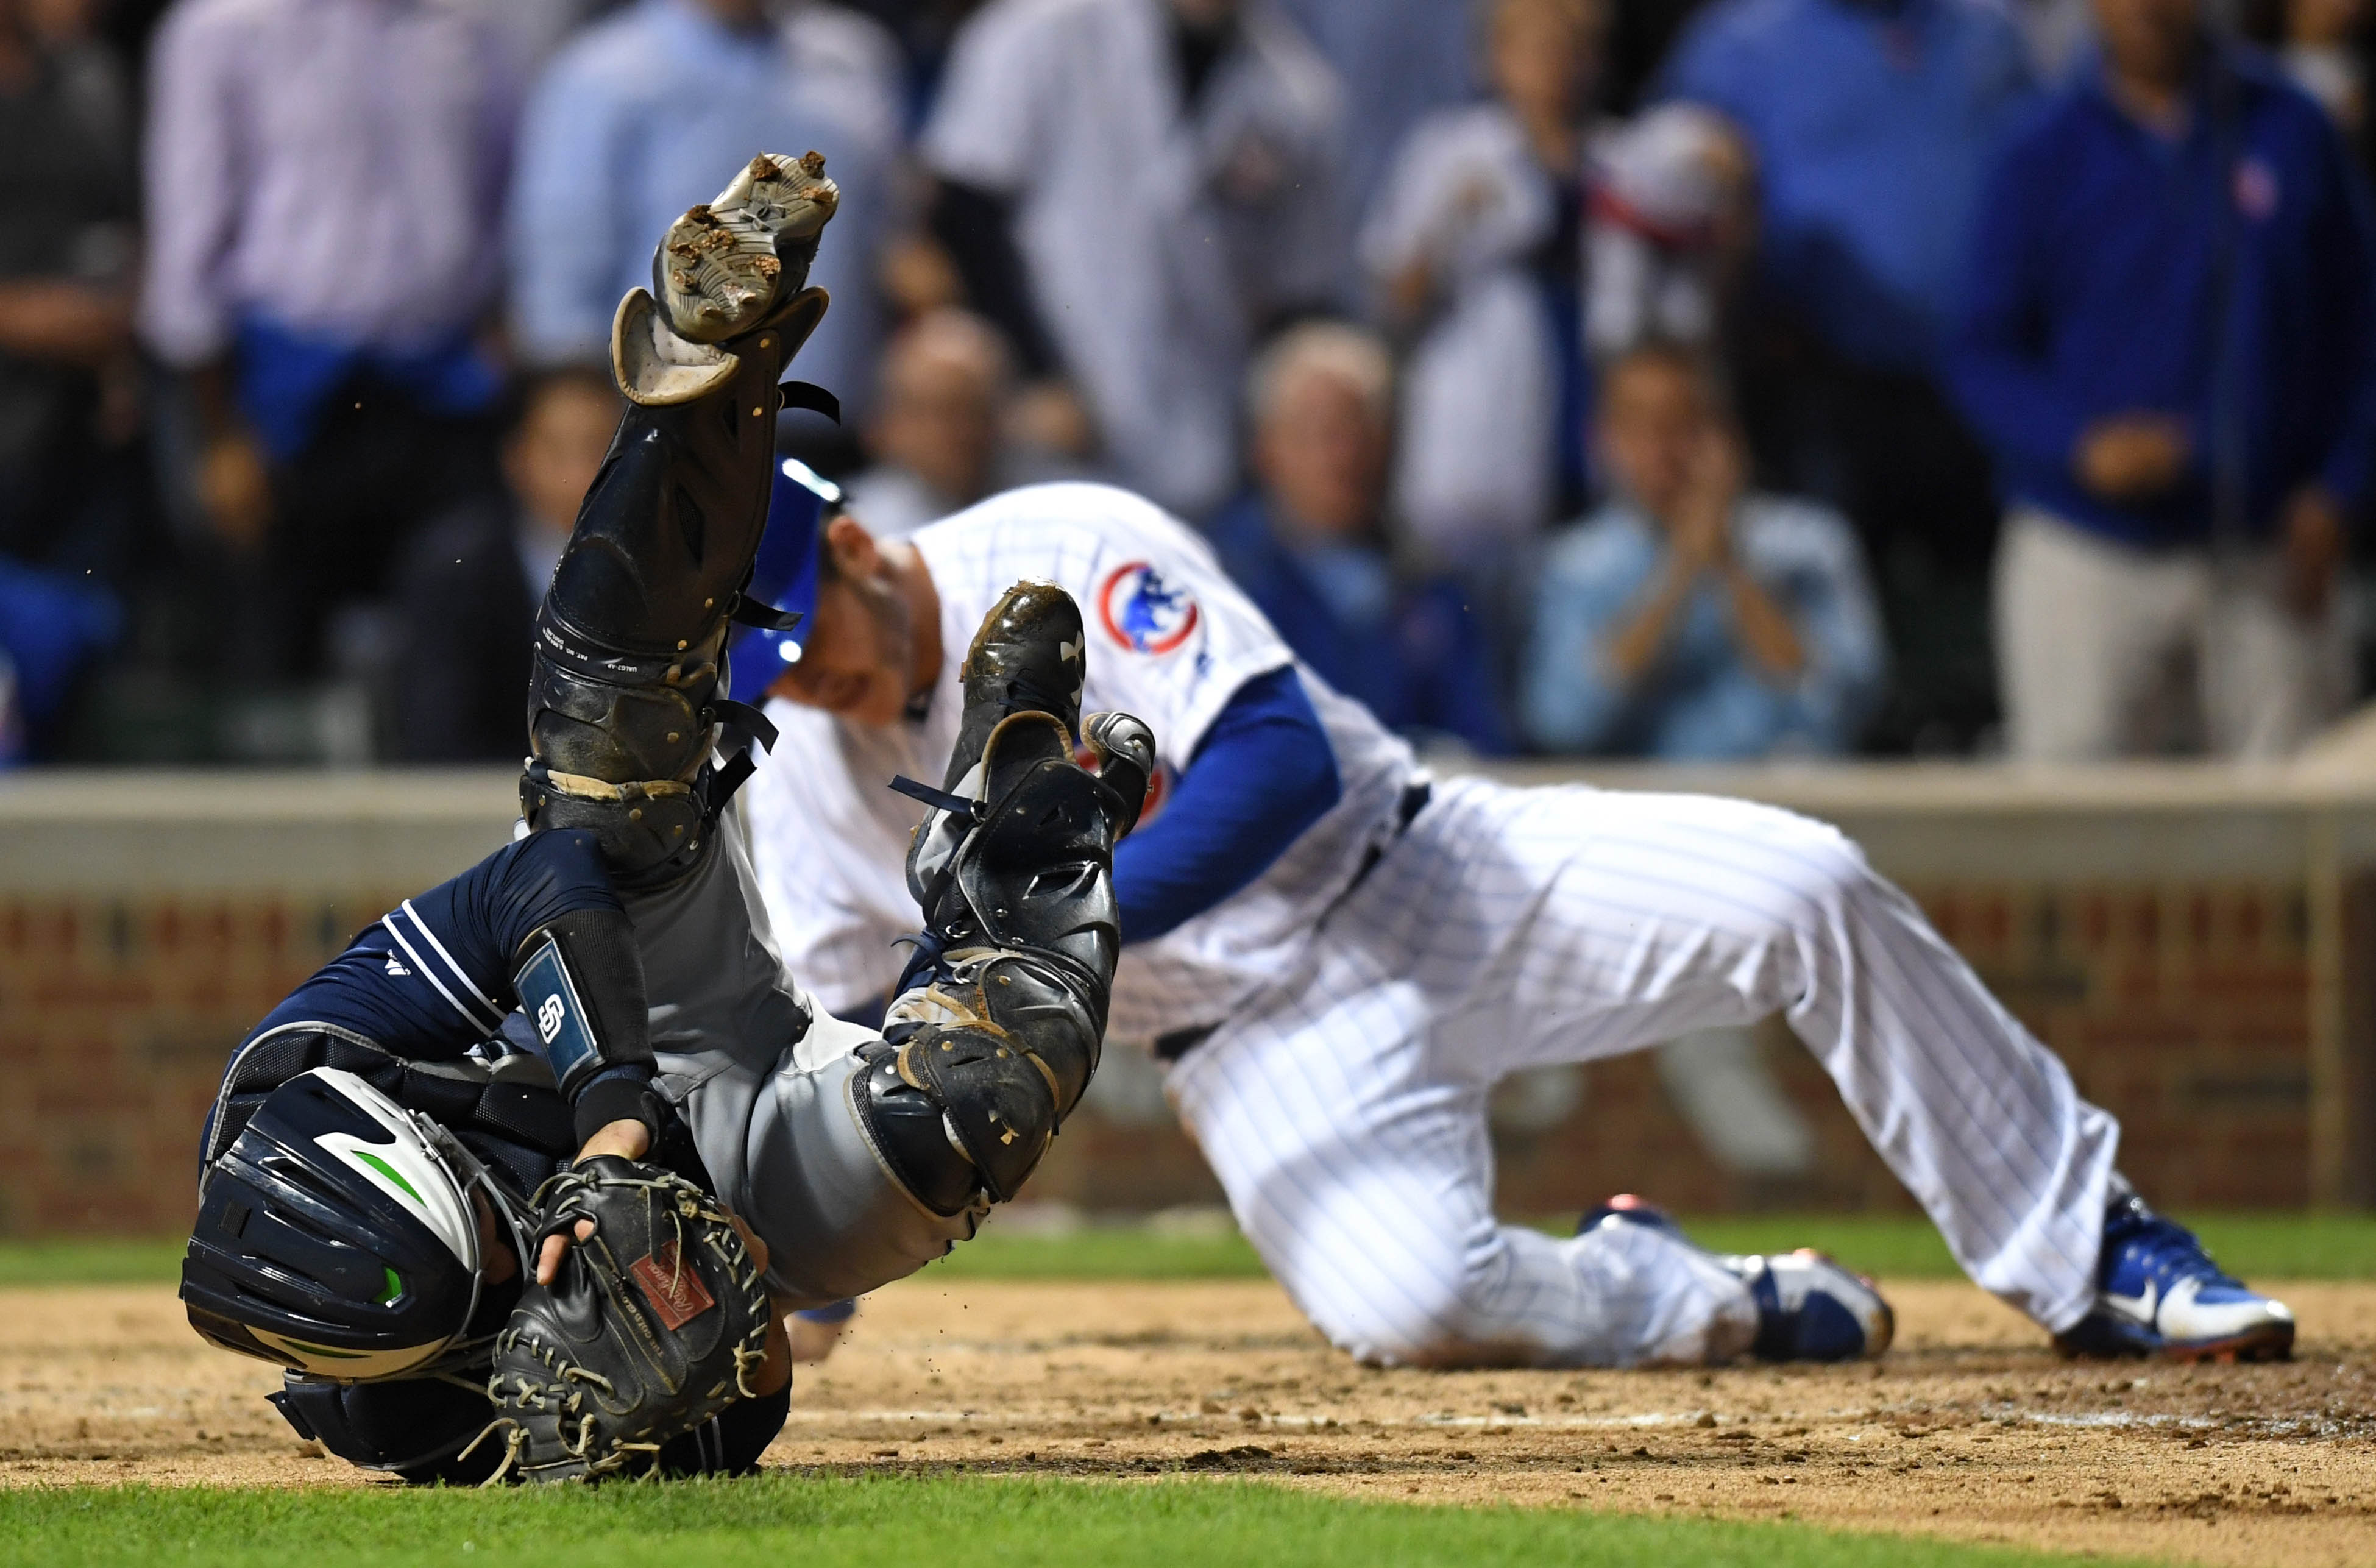 10121712-mlb-san-diego-padres-at-chicago-cubs-1